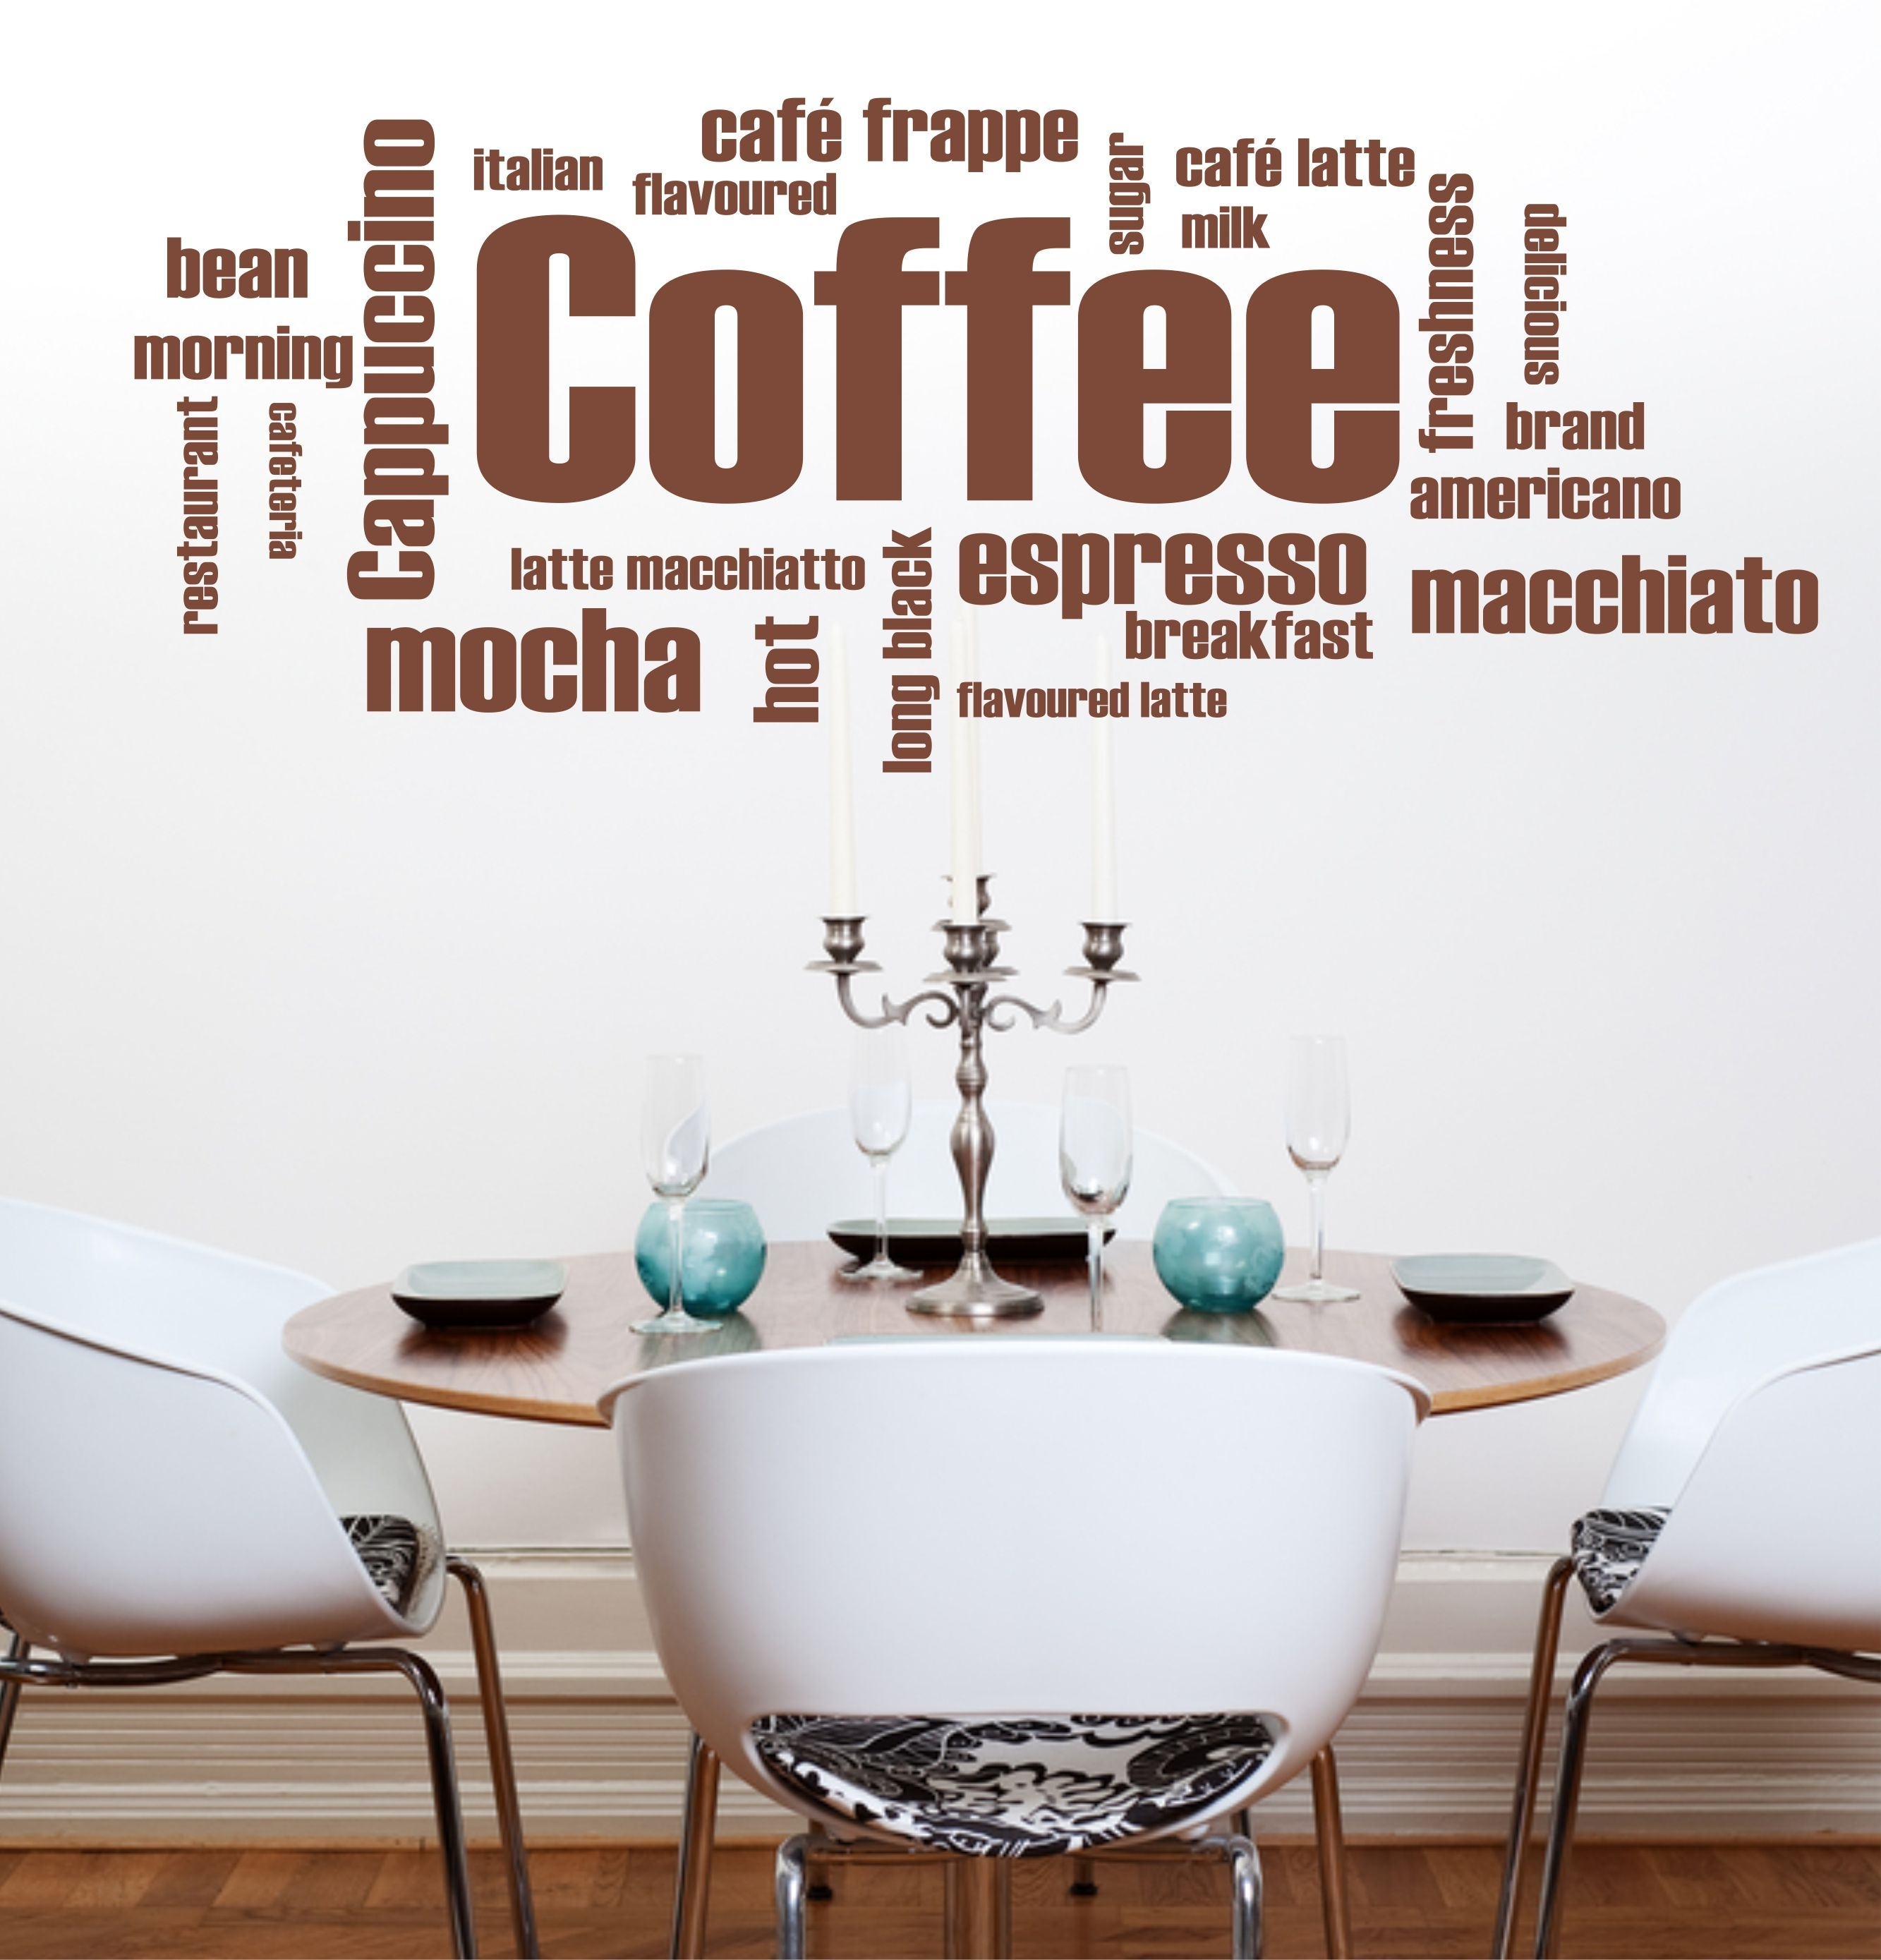 K Cool Coffee Wall Art   Best Home Design Interior 2018 With Coffee Wall Art (Photo 8 of 20)